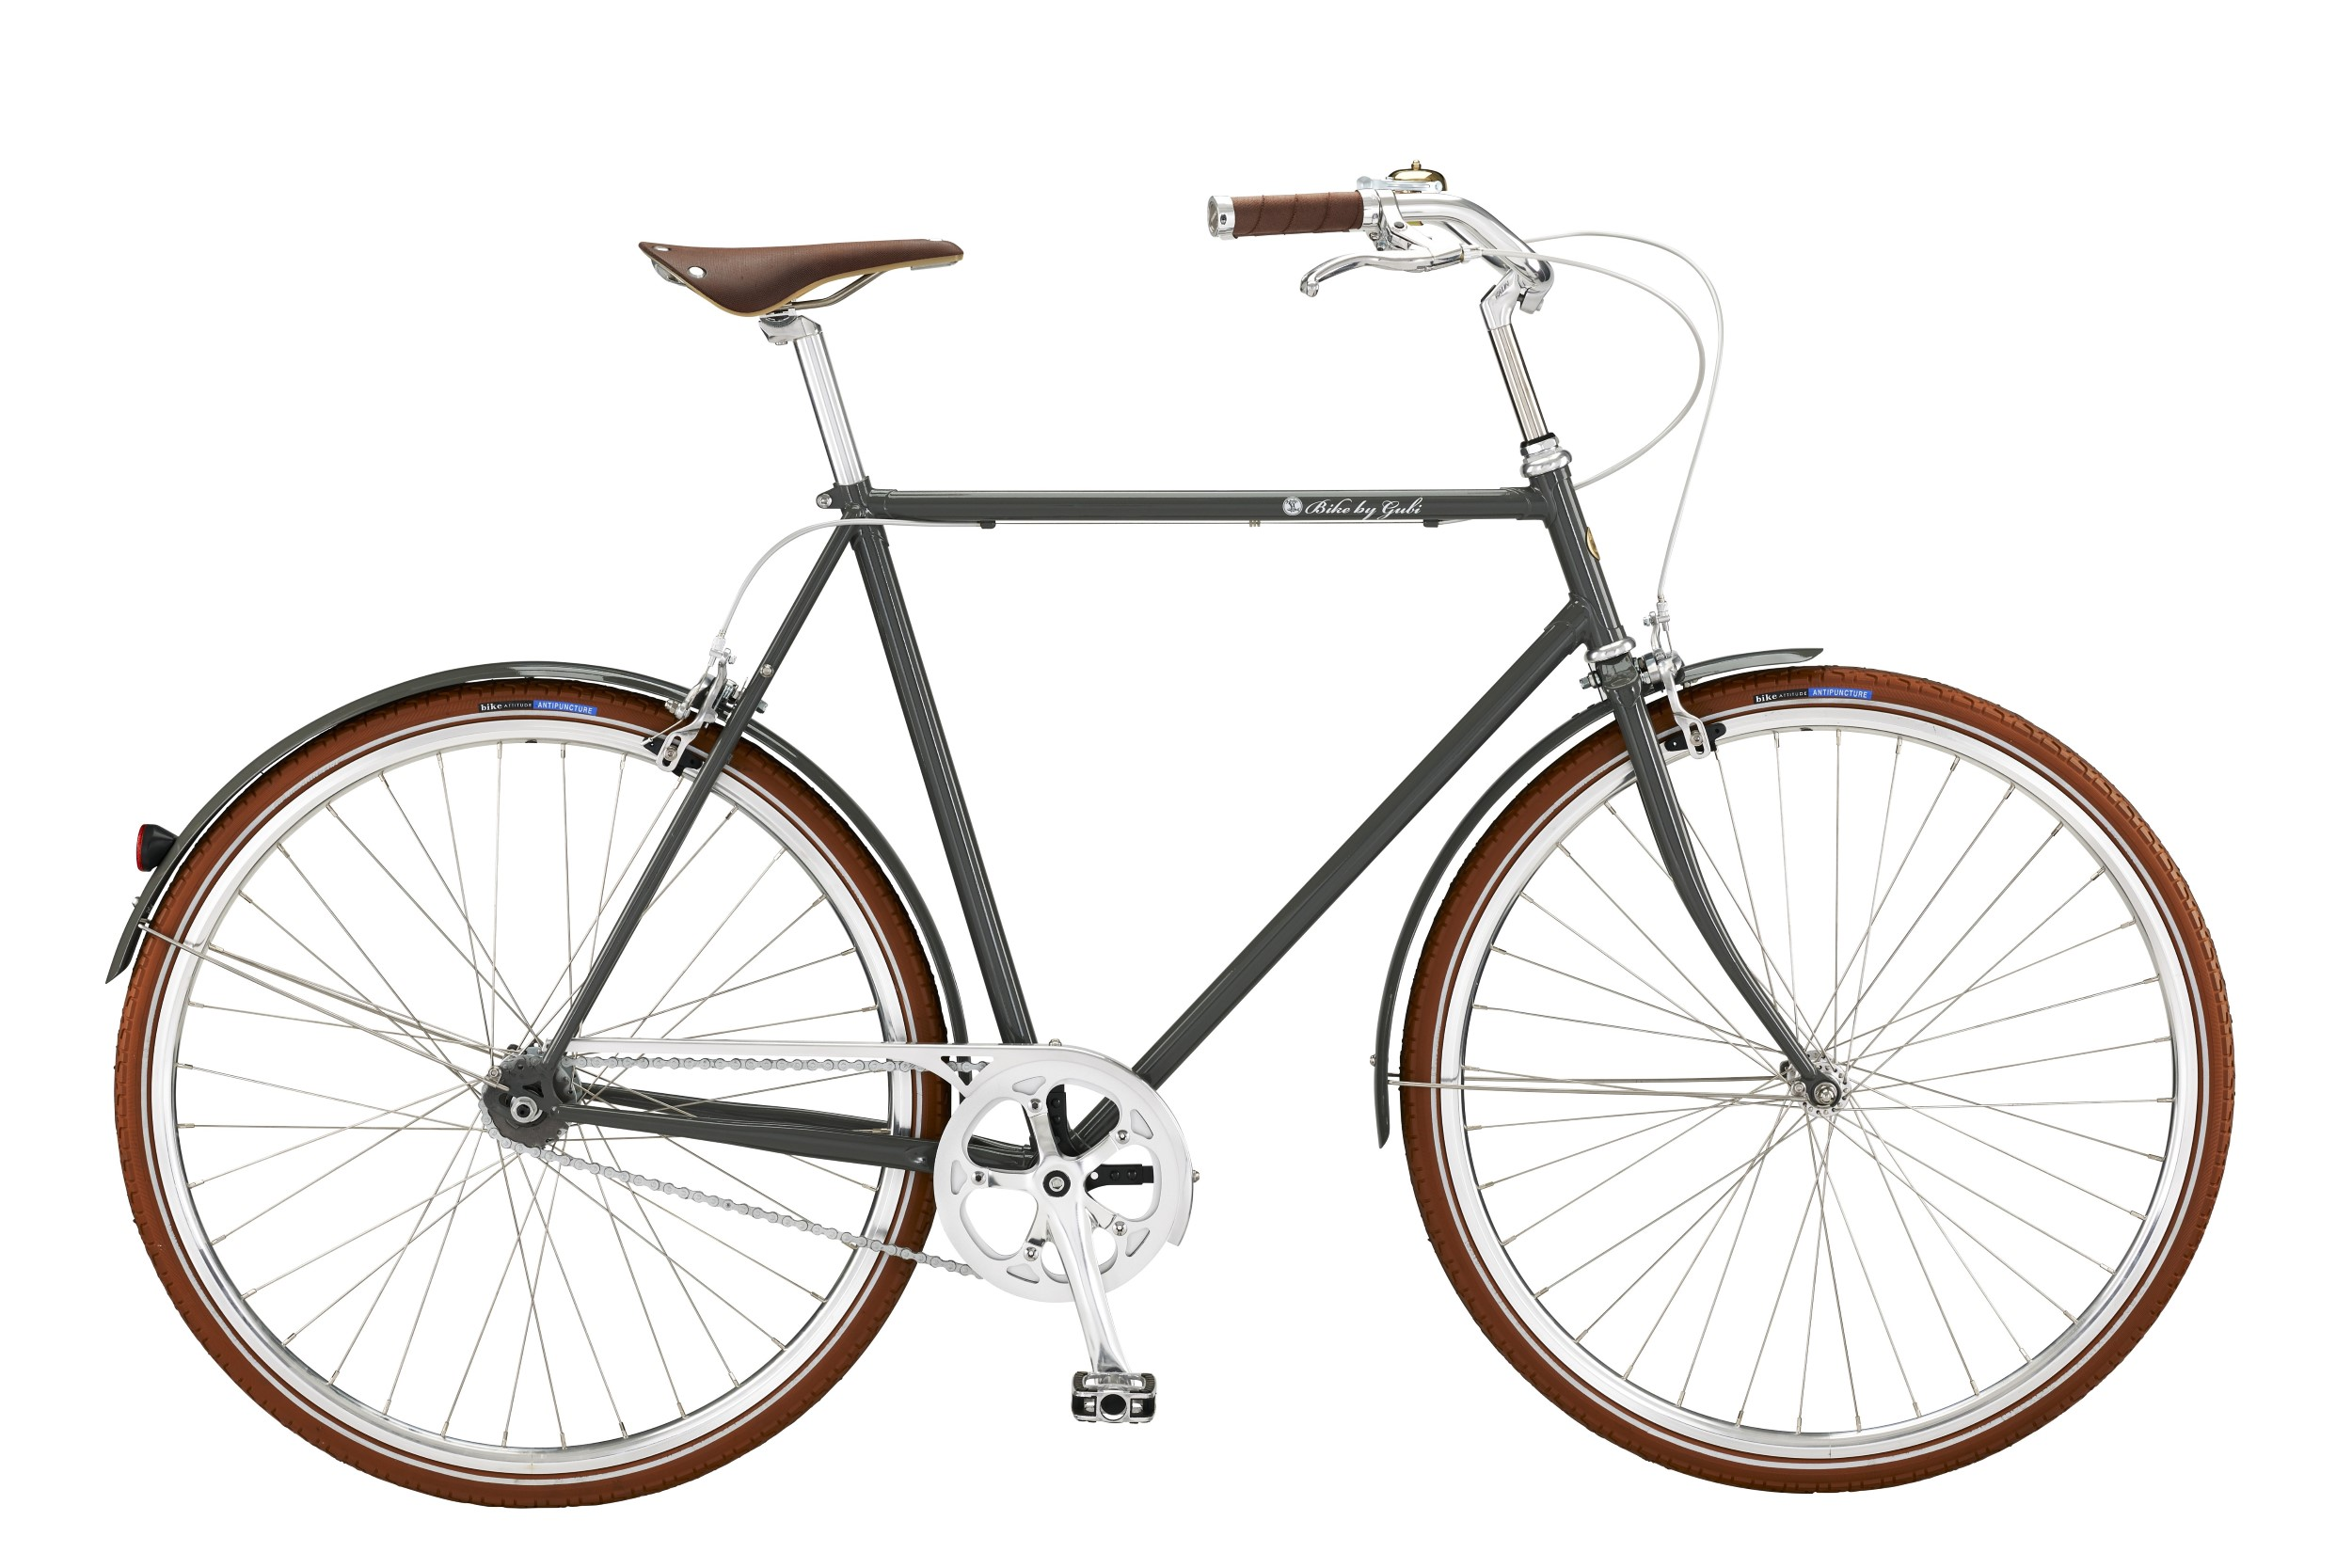 Bike by Gubi Herre 2 Auto Gear - Gubi Grey 2018